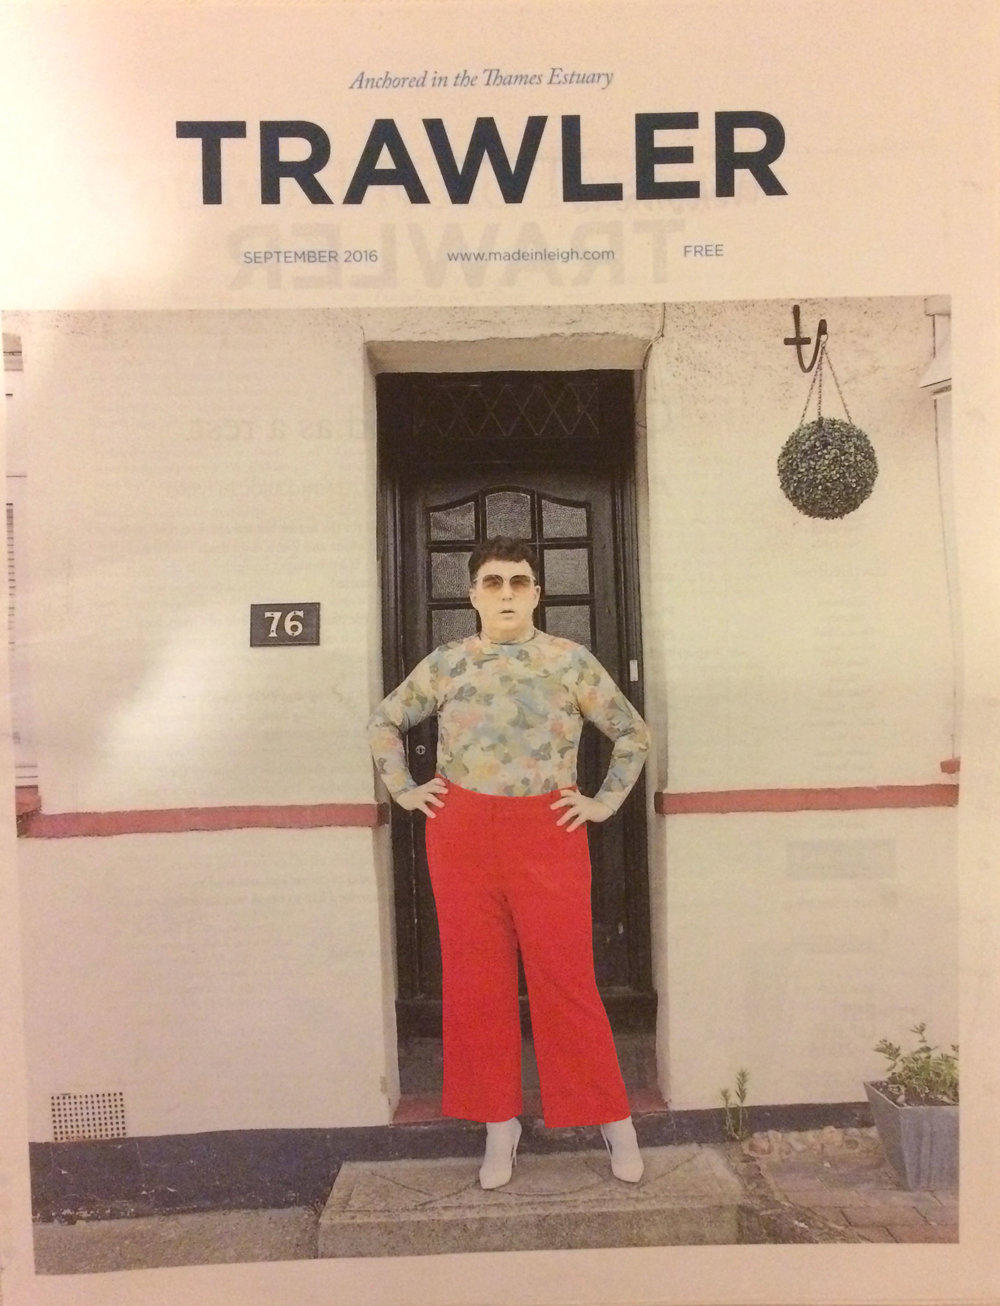 TRAWLER-SCOTTEE-COVER copy.jpg